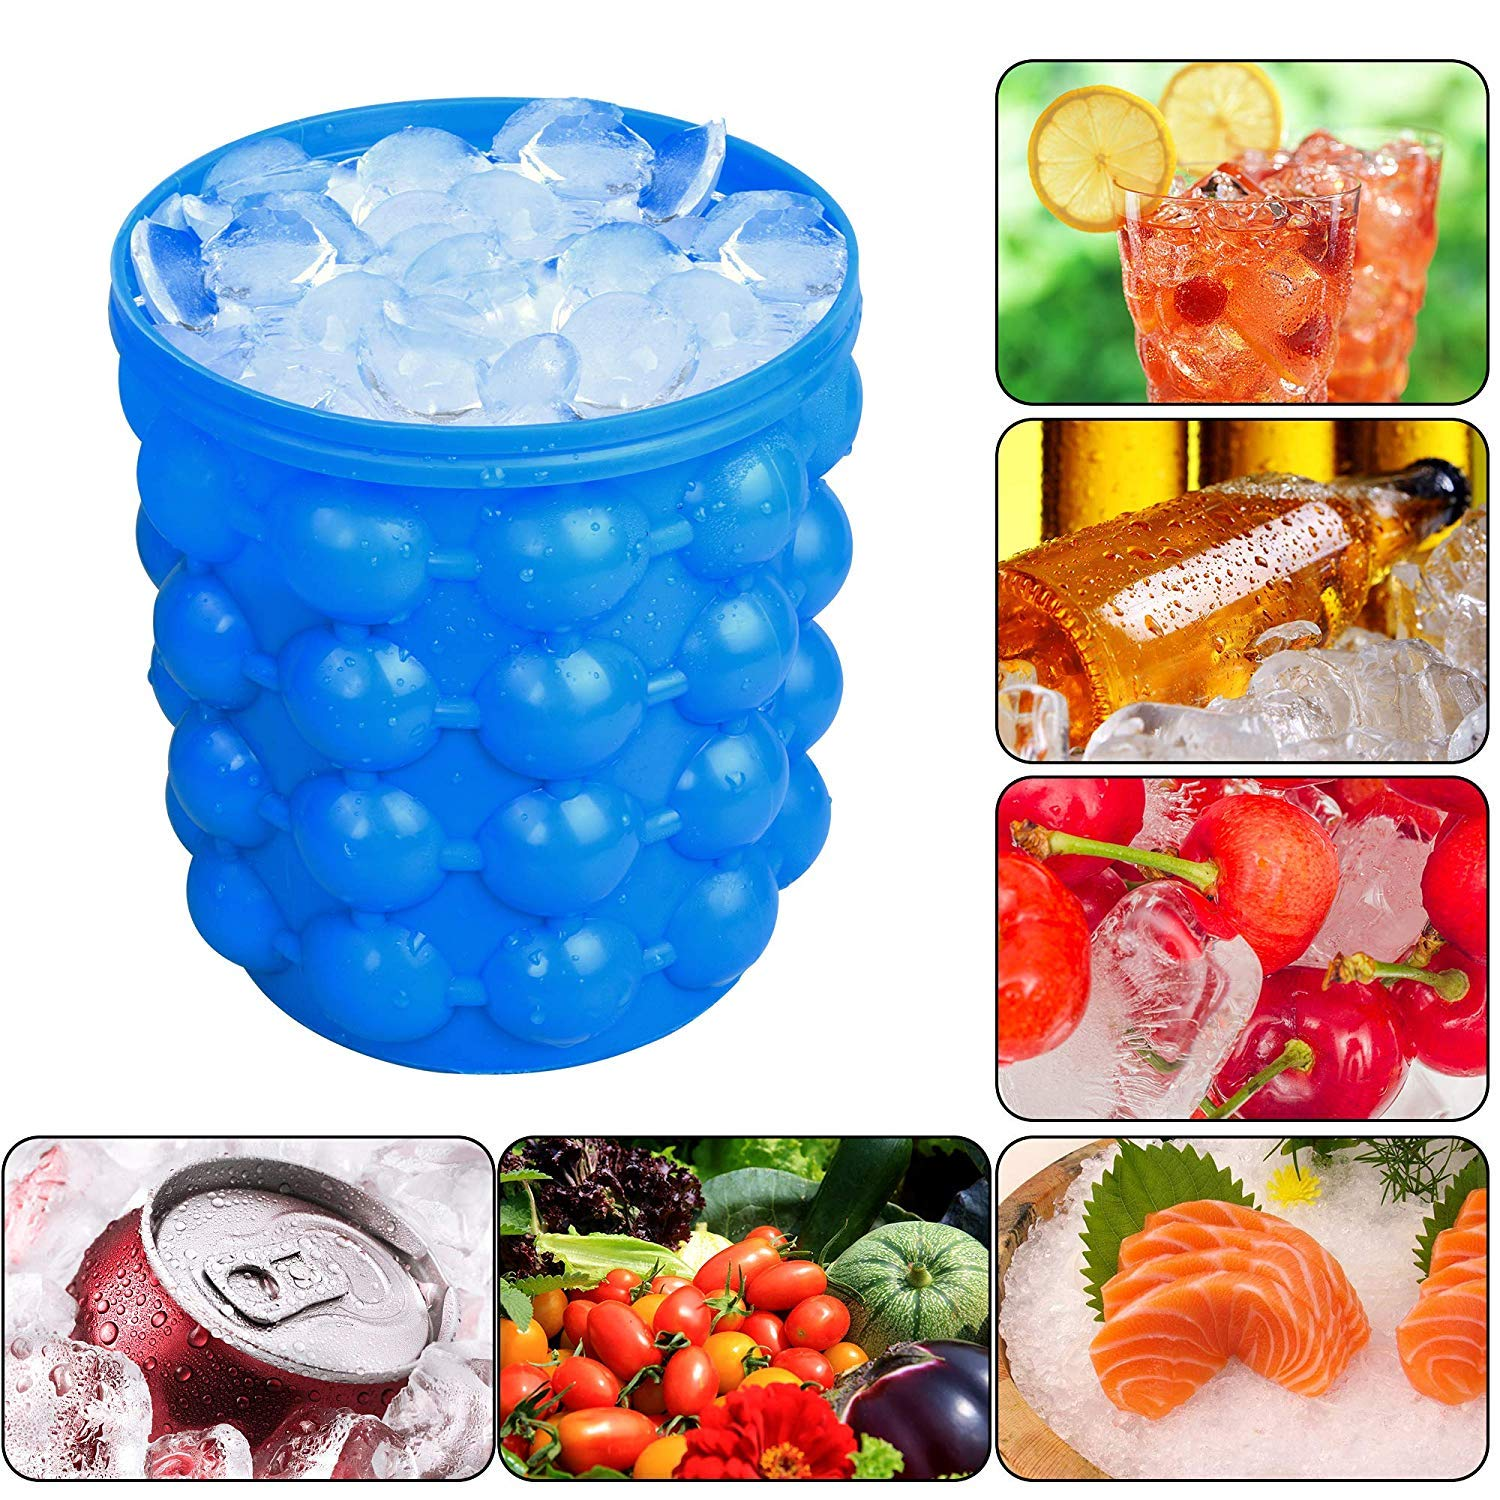 Besmon Ice Bucket,Large Silicone Ice Bucket & Ice Mold with lid, (2 in 1) Space Saving Ice Cube Maker, Silicon Ice Cube Maker, Portable Silicon Ice Cube Maker (Blue) by Besmon